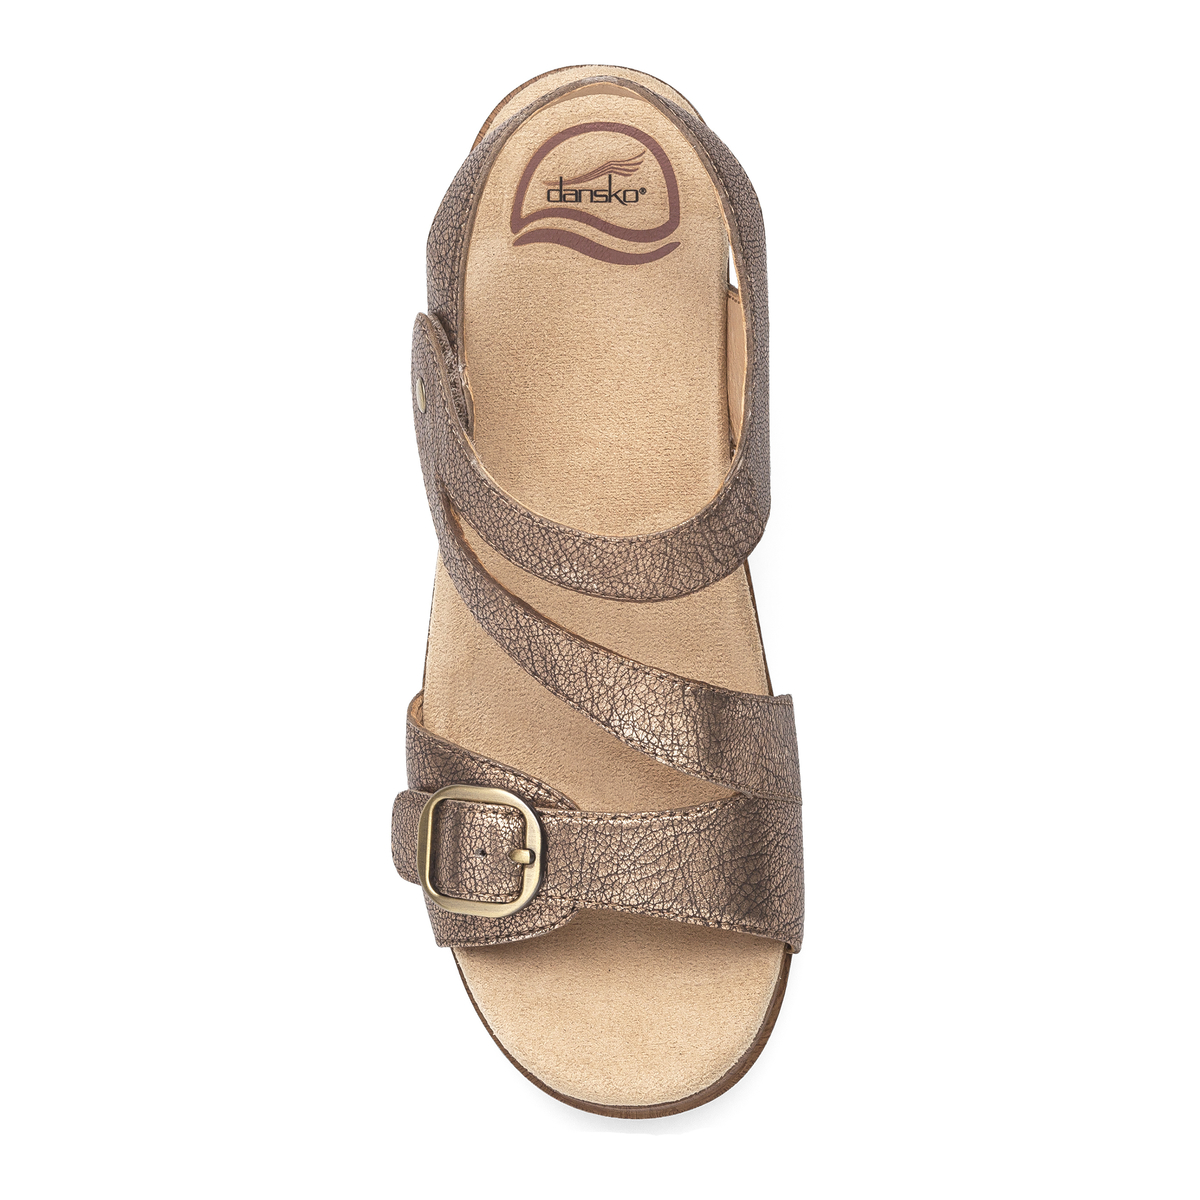 dansko management Shop our comfortable and stylish nursing shoes and clogs for all-shift support  trusted by healthcare professionals for 25+ years free shipping sitewide.